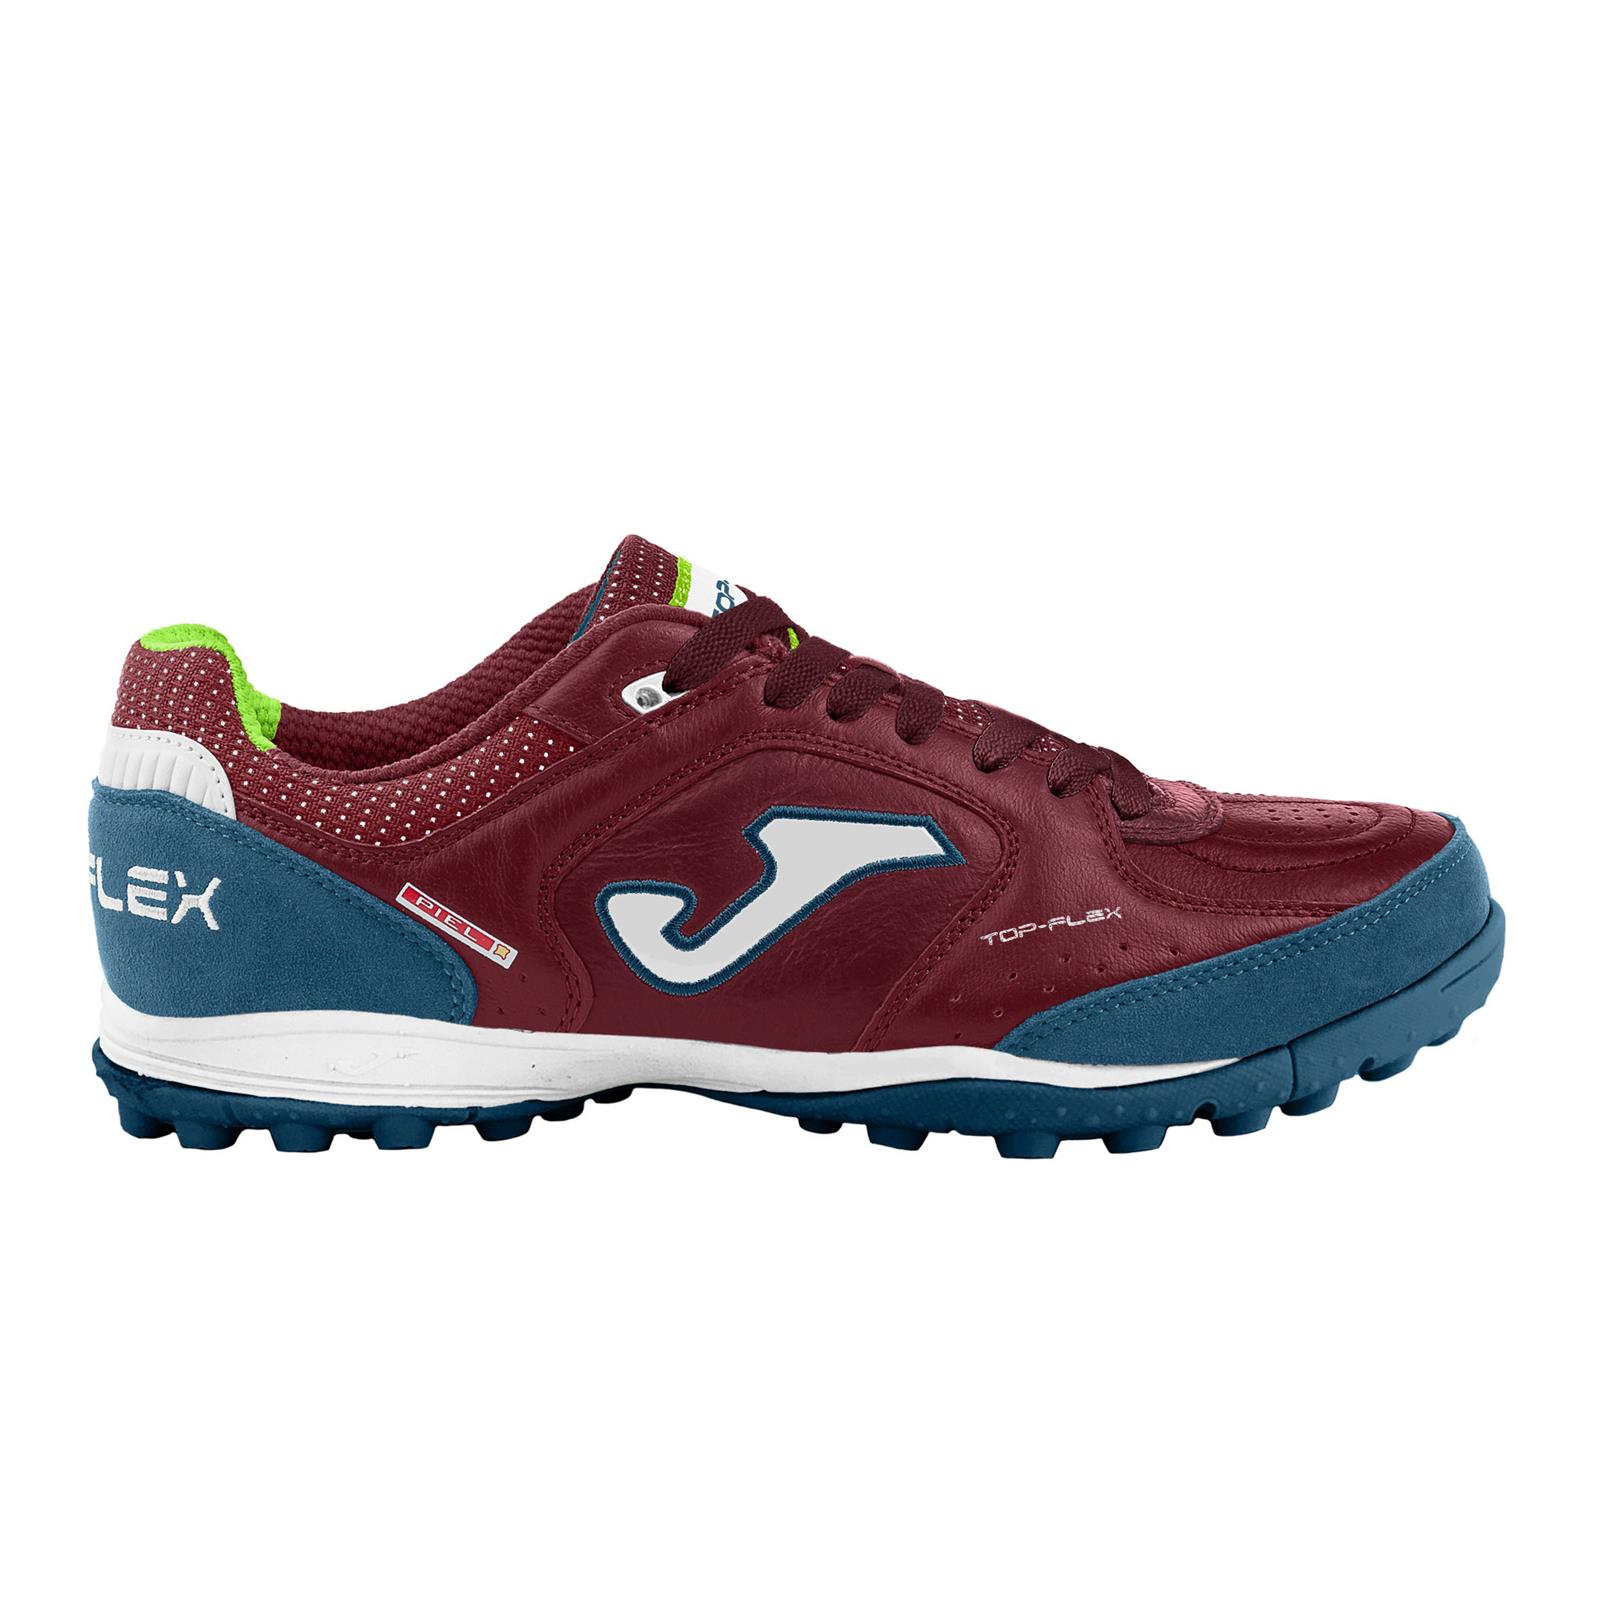 JOMA Scarpa calcio a 5 Top Flex 2020 Turf (38 - BORDEAUX - MARINO)